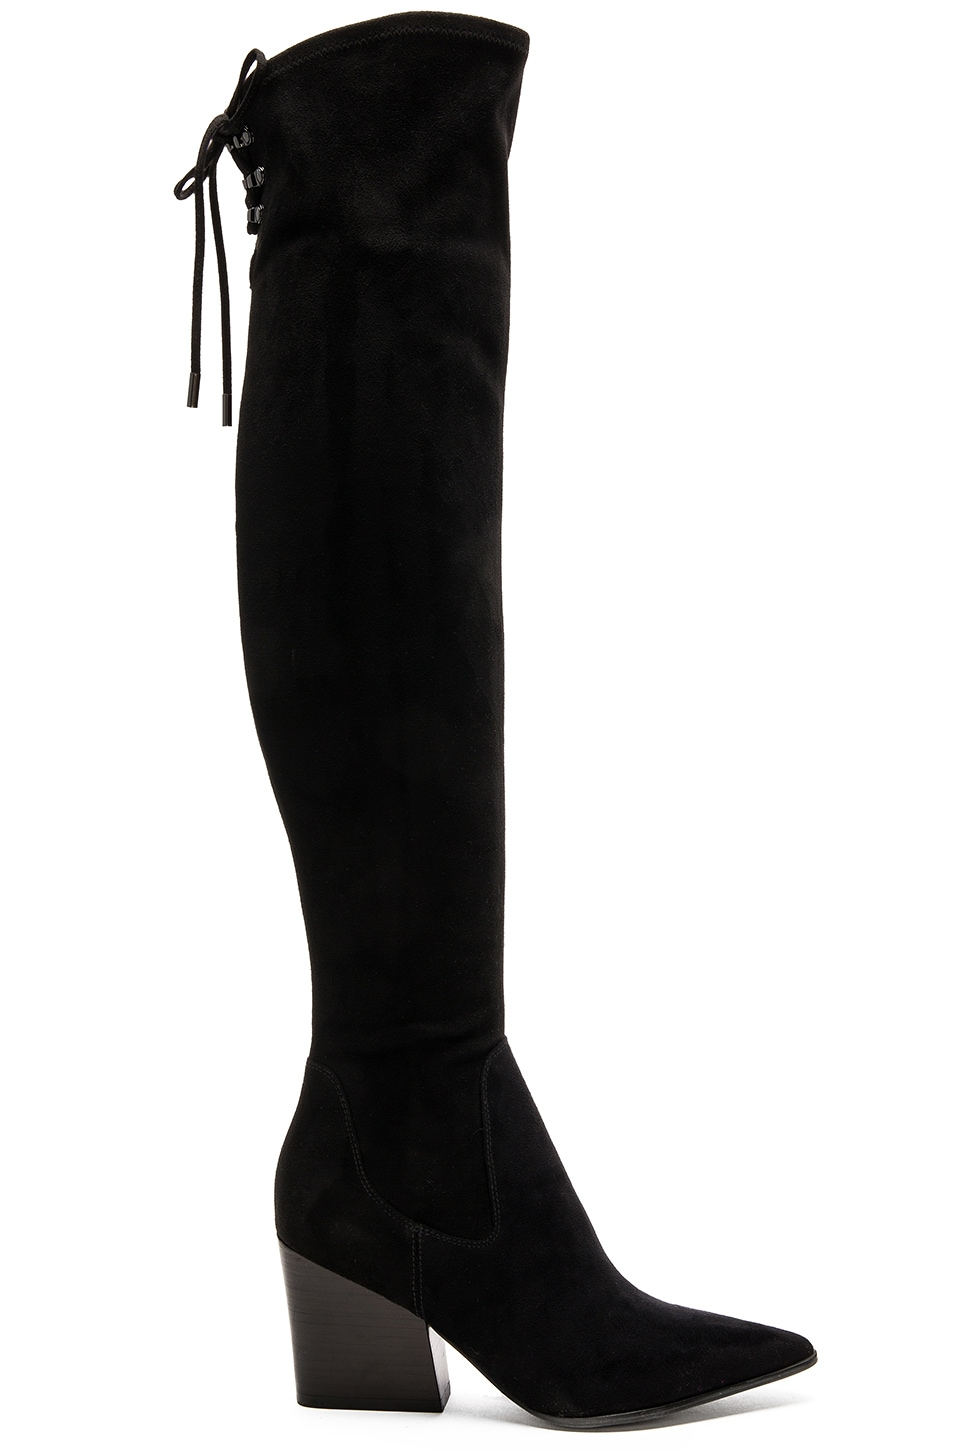 Fedra Boot by KENDALL + KYLIE